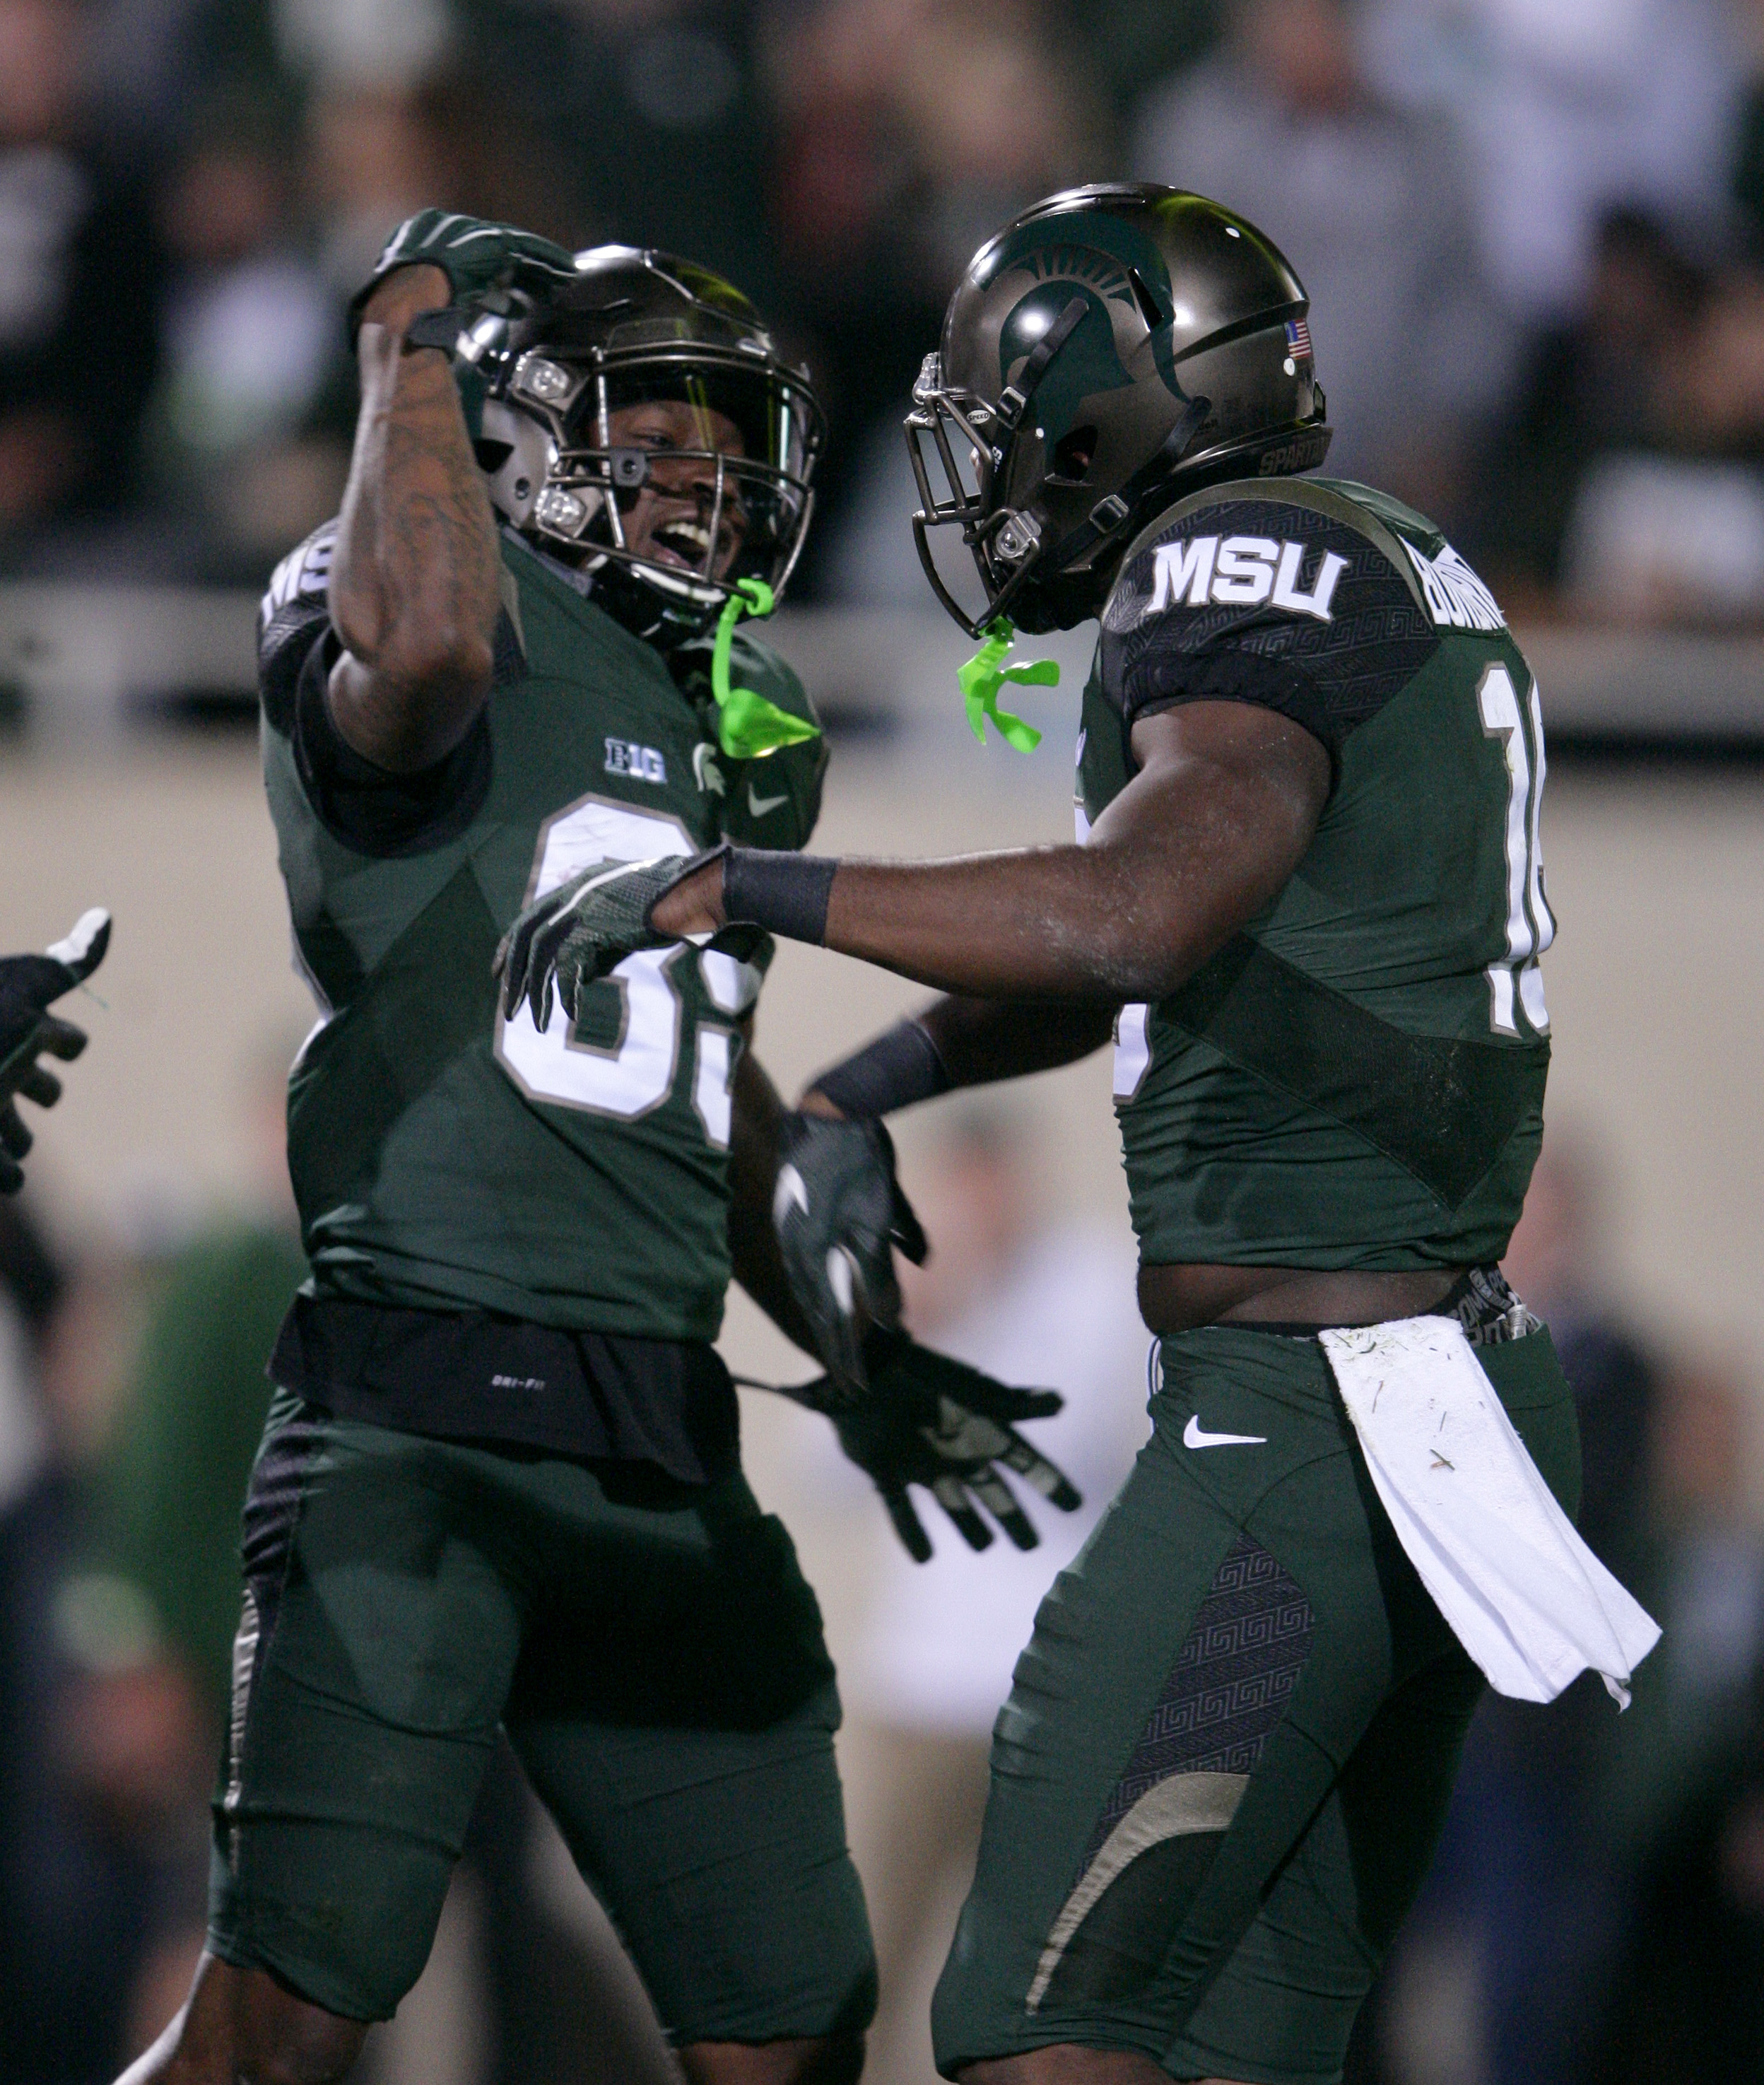 Michigan State's Aaron Burbridge, right, and Macgarrett Kings Jr. celebrate Burbridge's touchdown against Oregon during the second quarter of an NCAA college football game, Saturday, Sept. 12, 2015, in East Lansing, Mich. (AP Photo/Al Goldis)